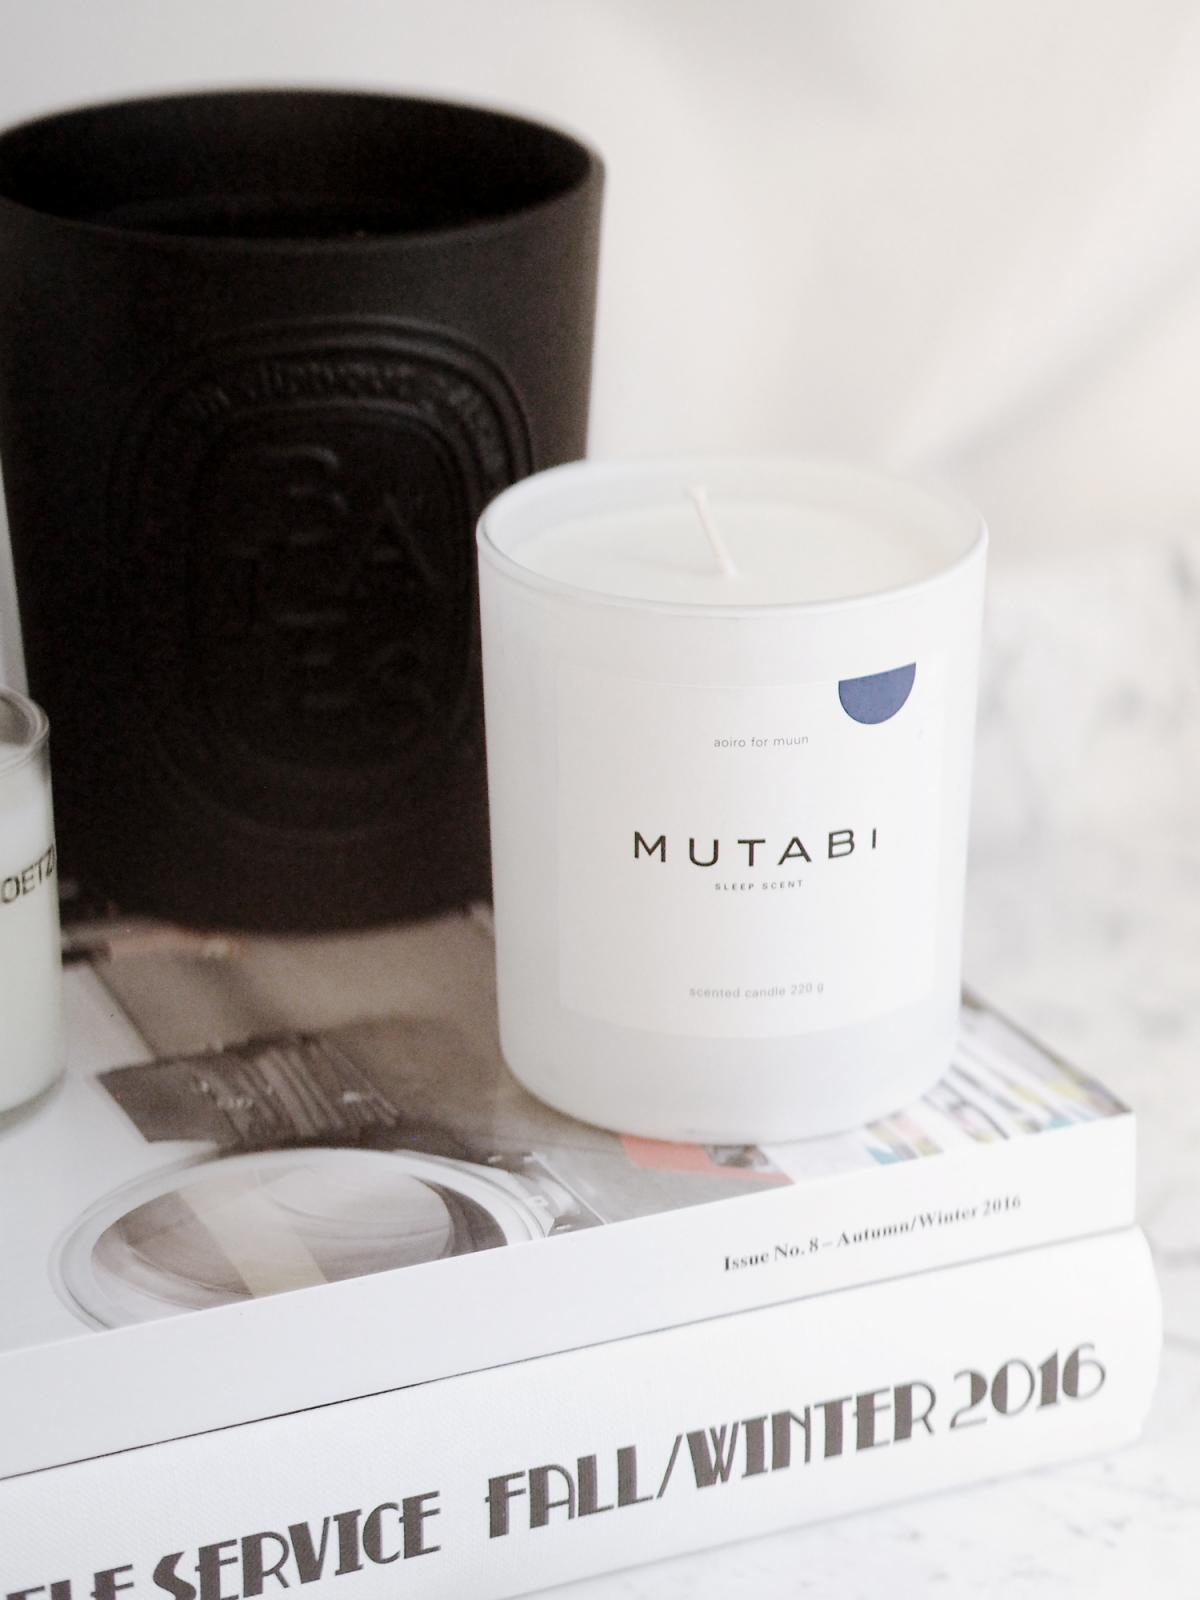 therandomnoise.com_Scented Candles_Diptyque GIANT CANDLE BAIES_Aoiro for Muun Mutabi Sleep Scent